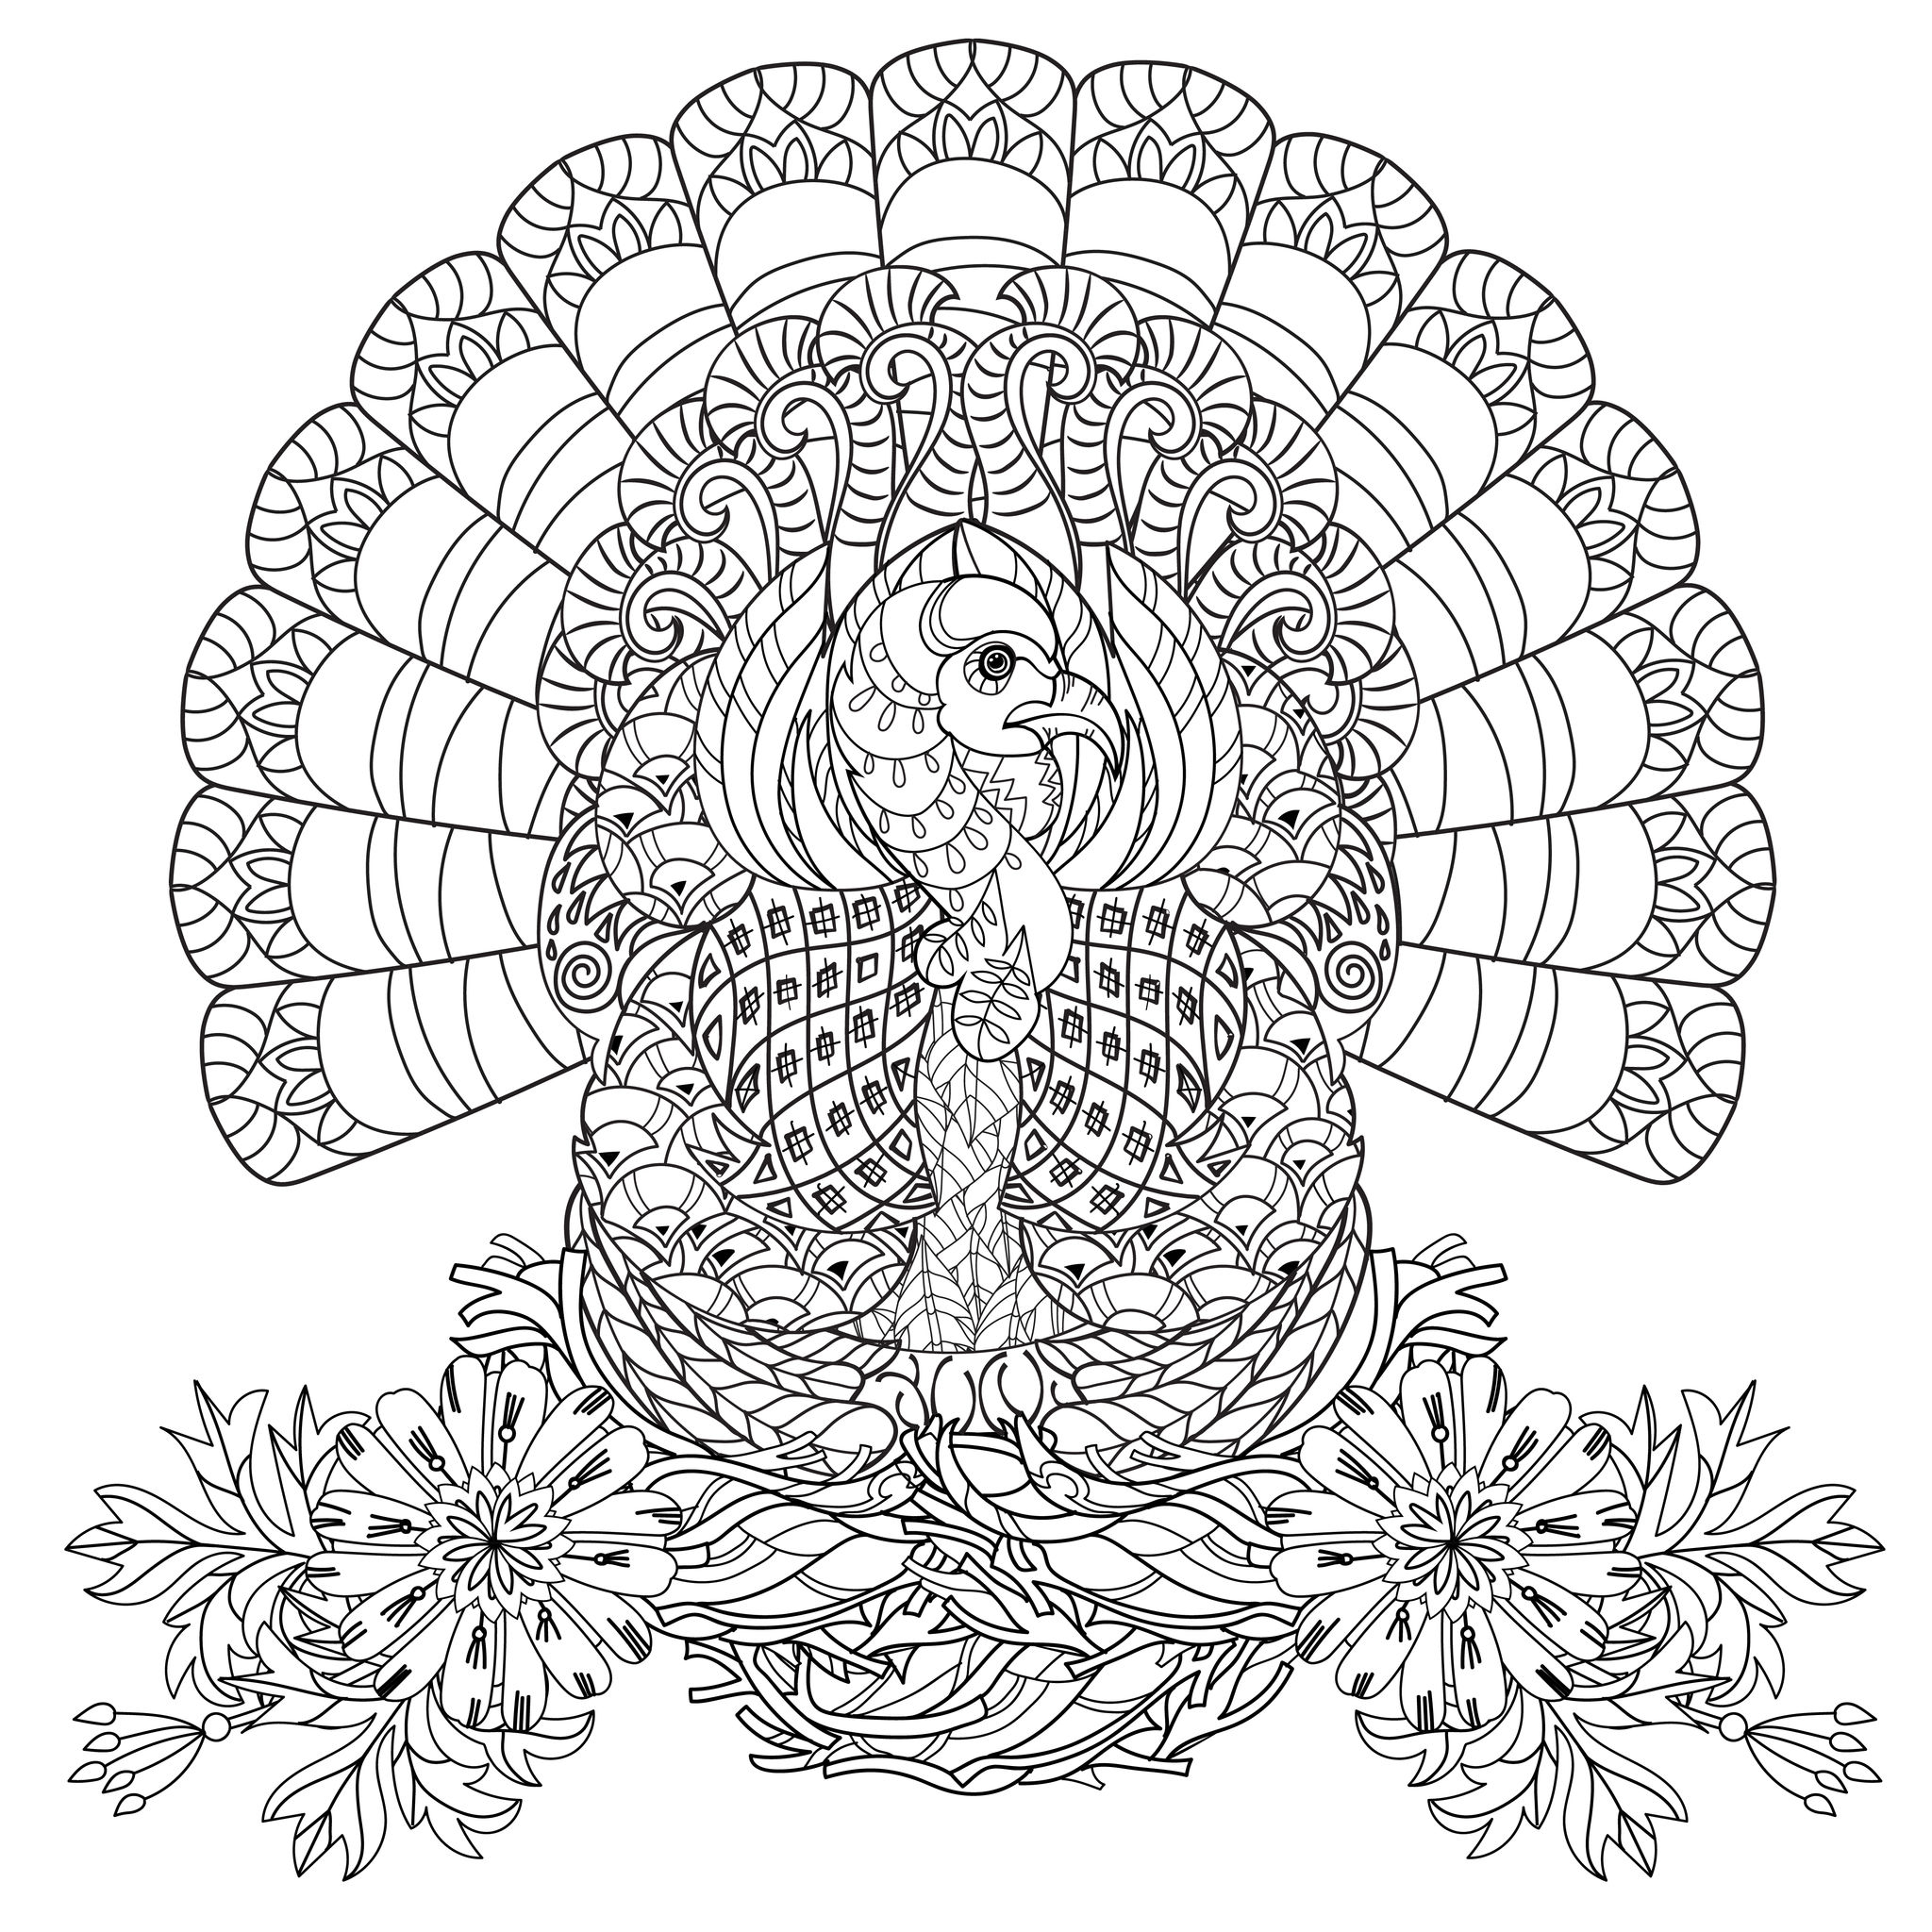 Thanksgiving Coloring Pages To Print For Free - Coloring Home | 2048x2048